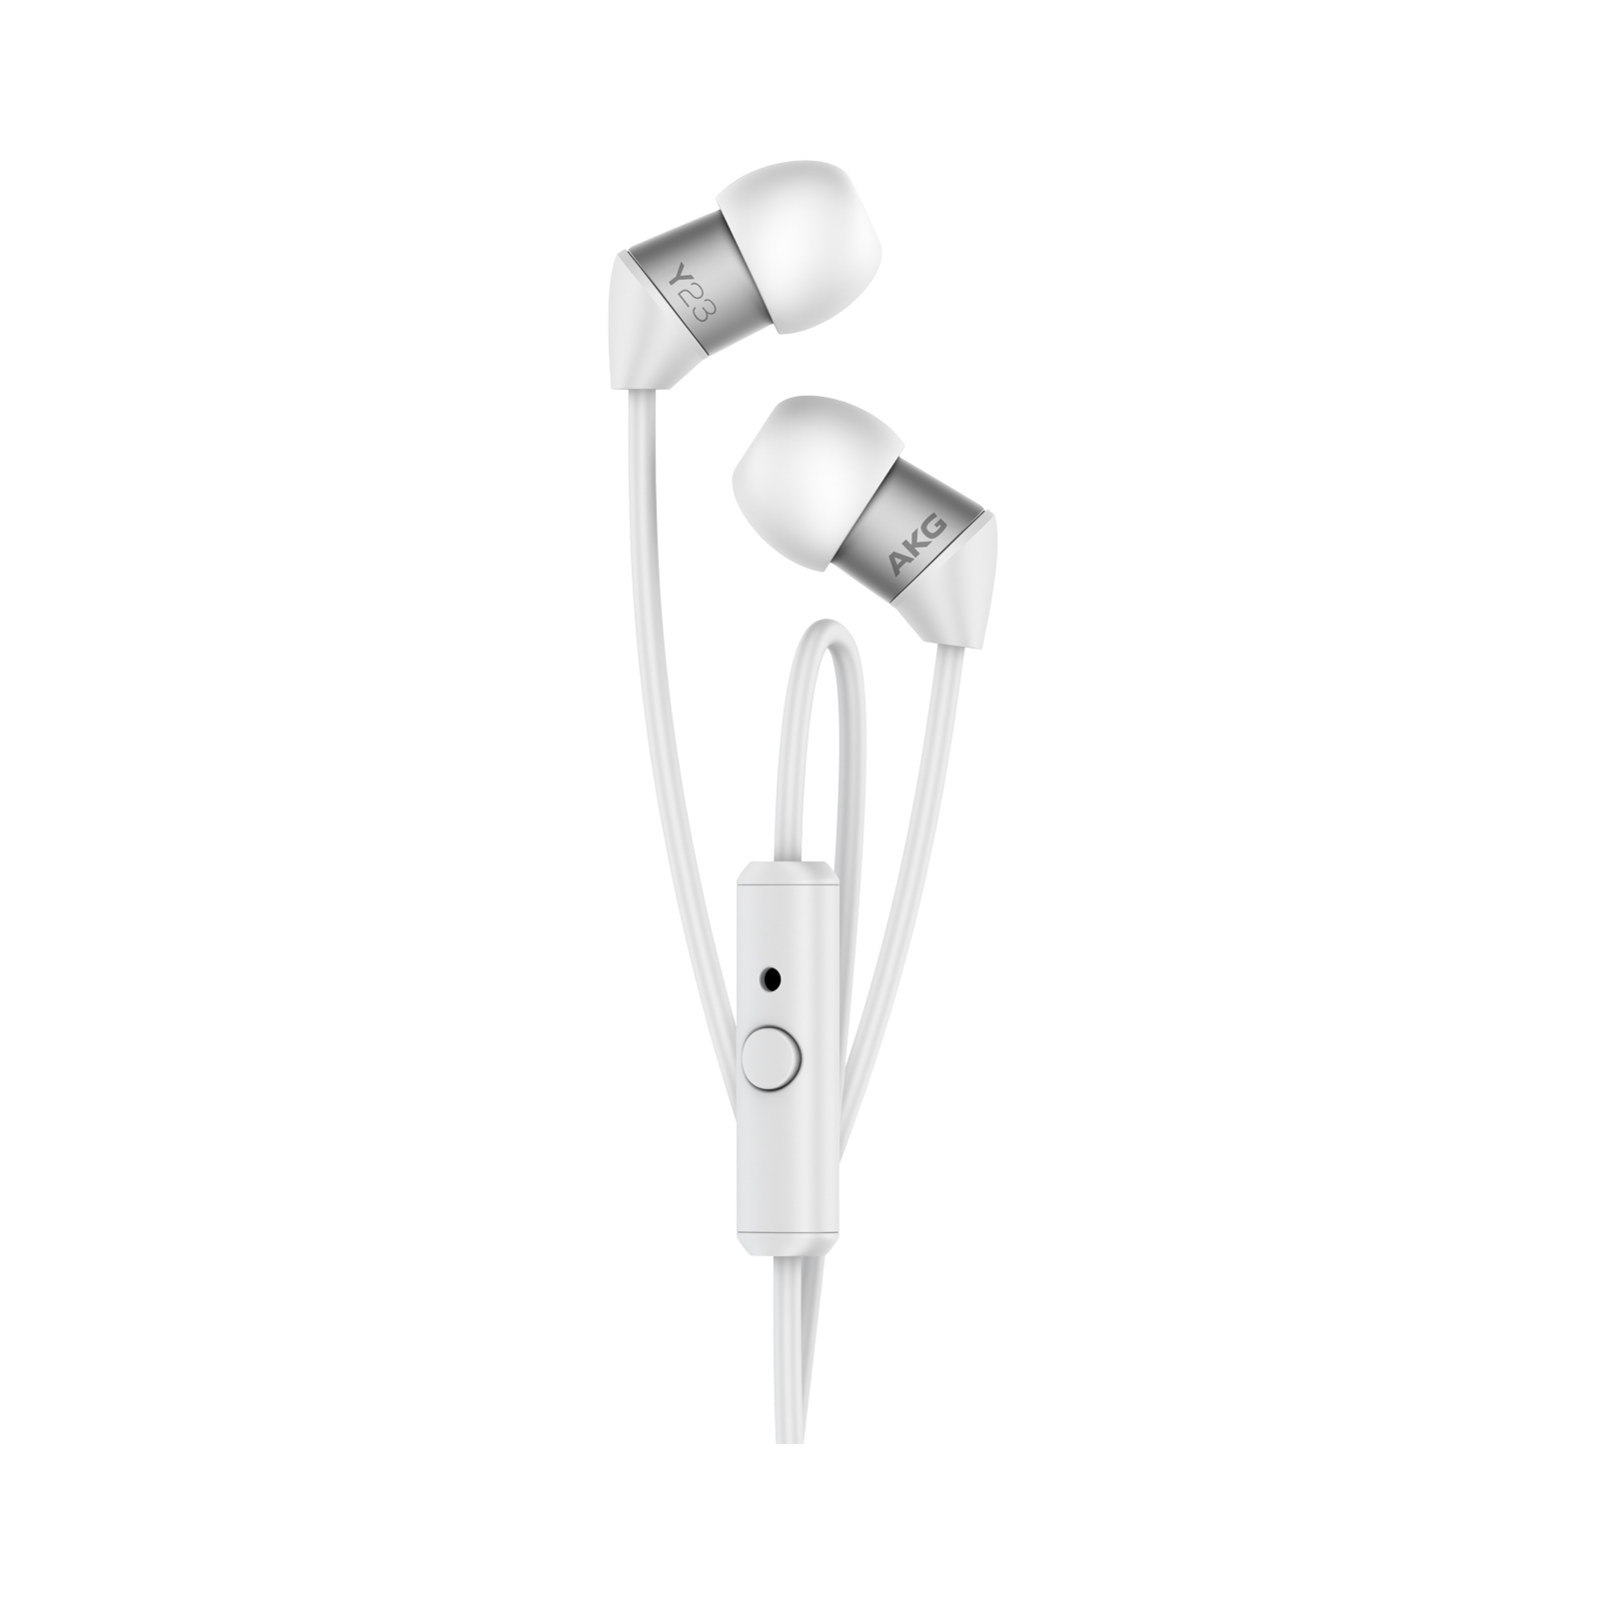 Y23U - White - The smallest in-ear headphones with universal remote and microphone - Detailshot 2